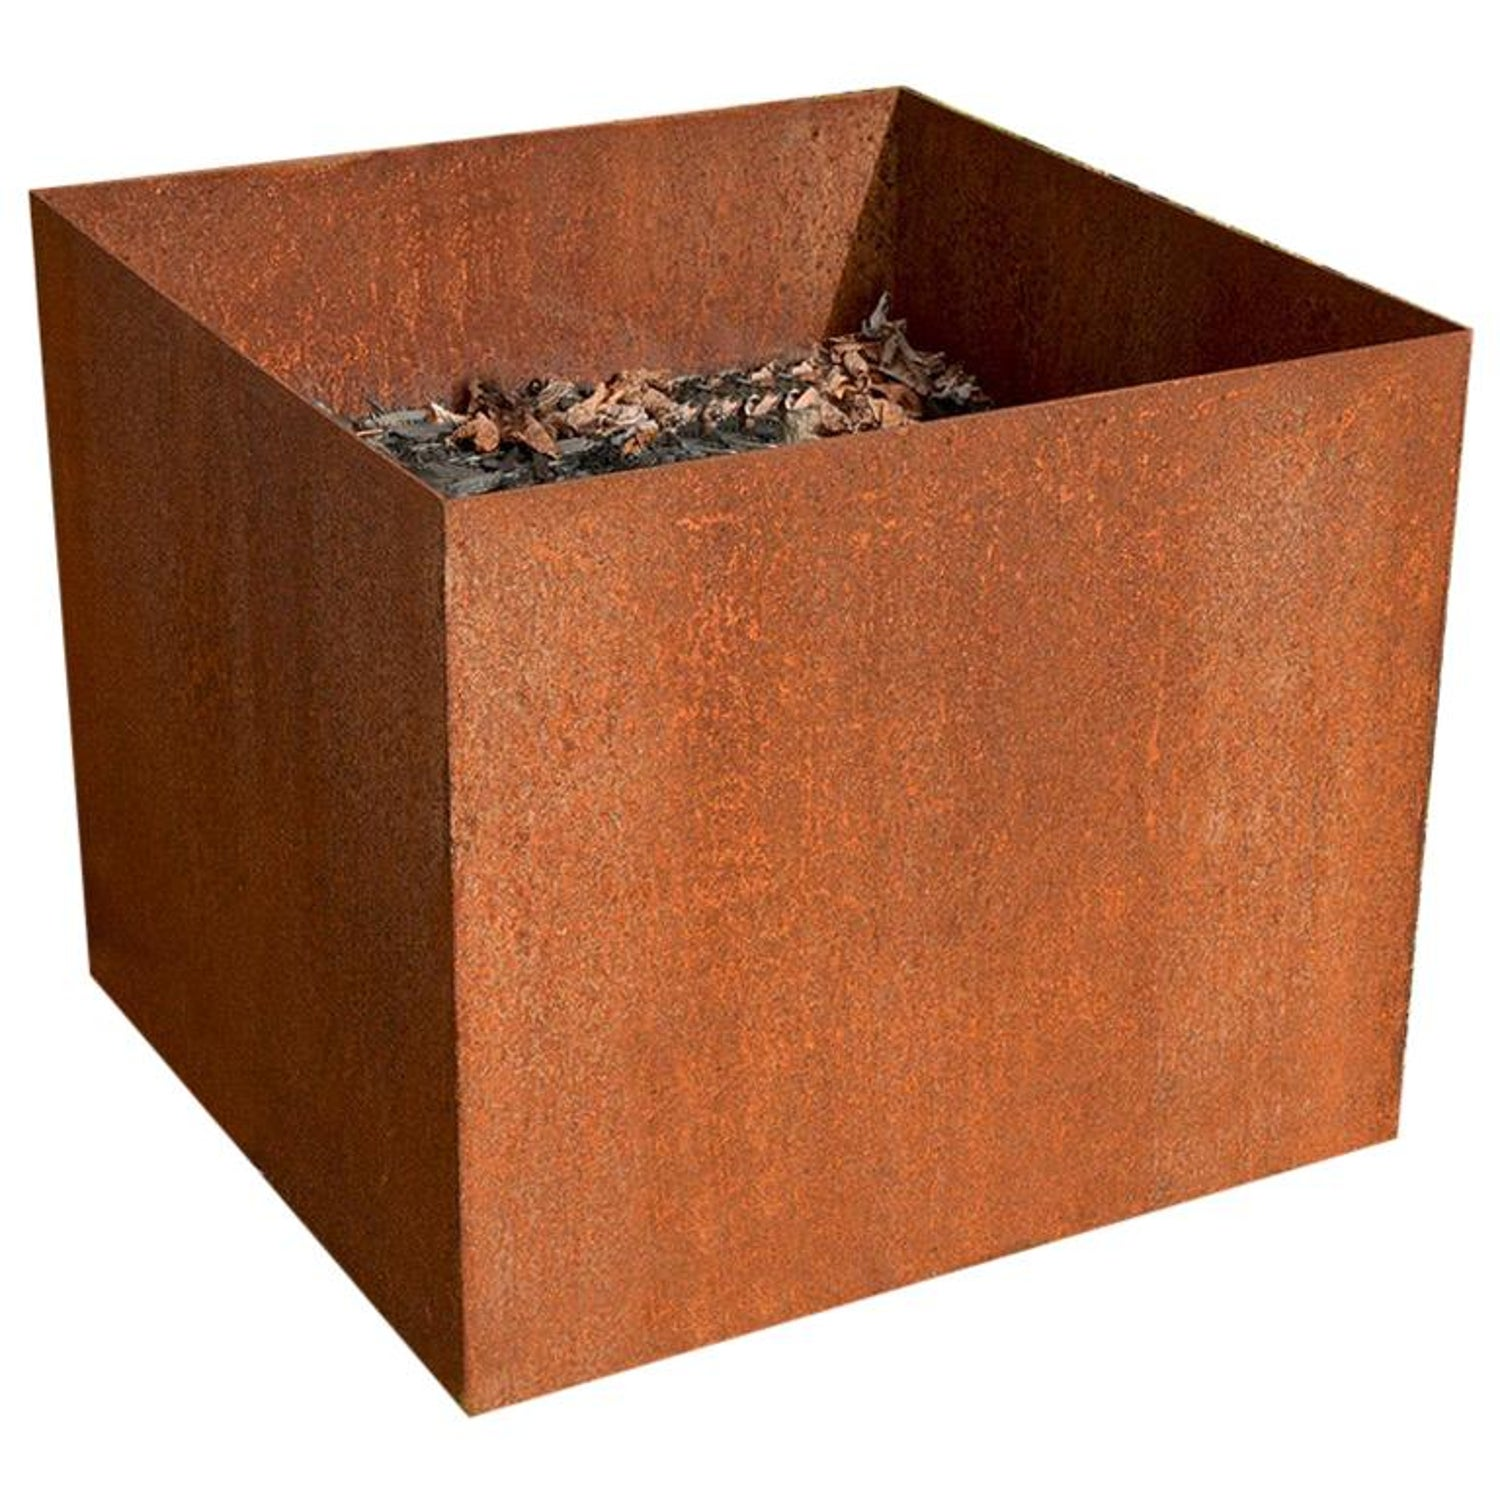 Custom Rustic Rusted Metal Planters For Sale At 1stdibs